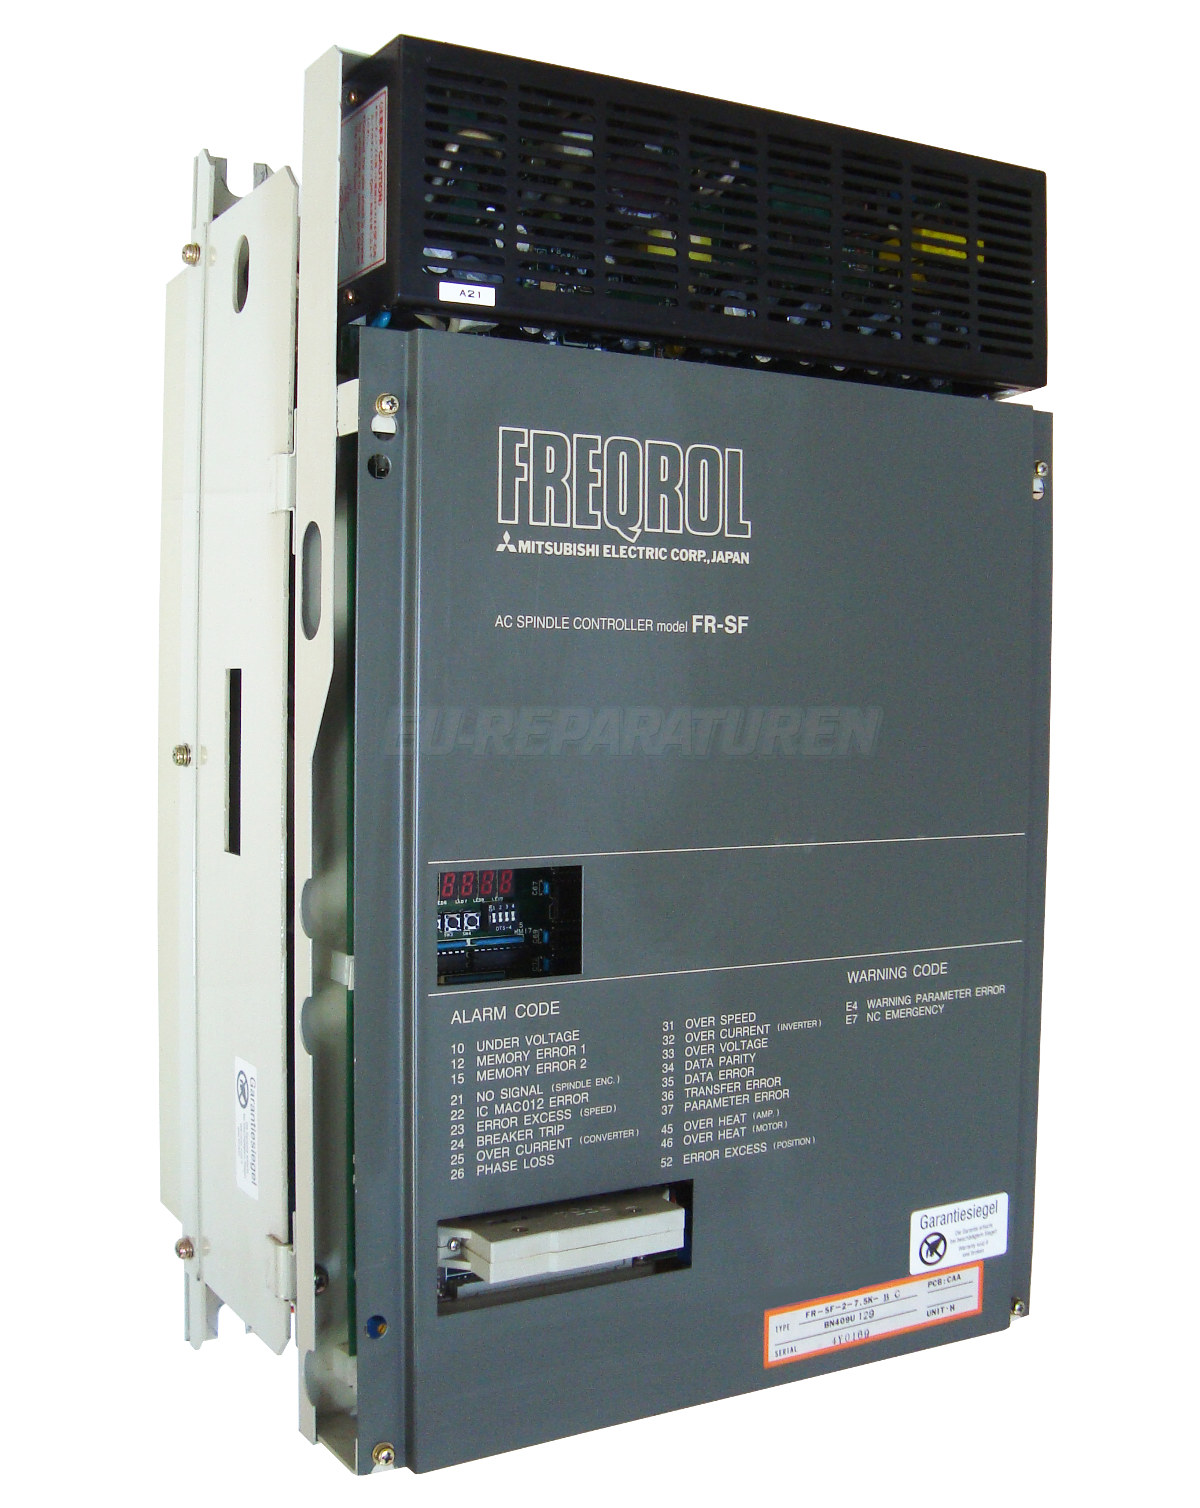 SHOP, Kaufen: MITSUBISHI ELECTRIC FR-SF-2-7.5K-BC FREQUENZUMFORMER